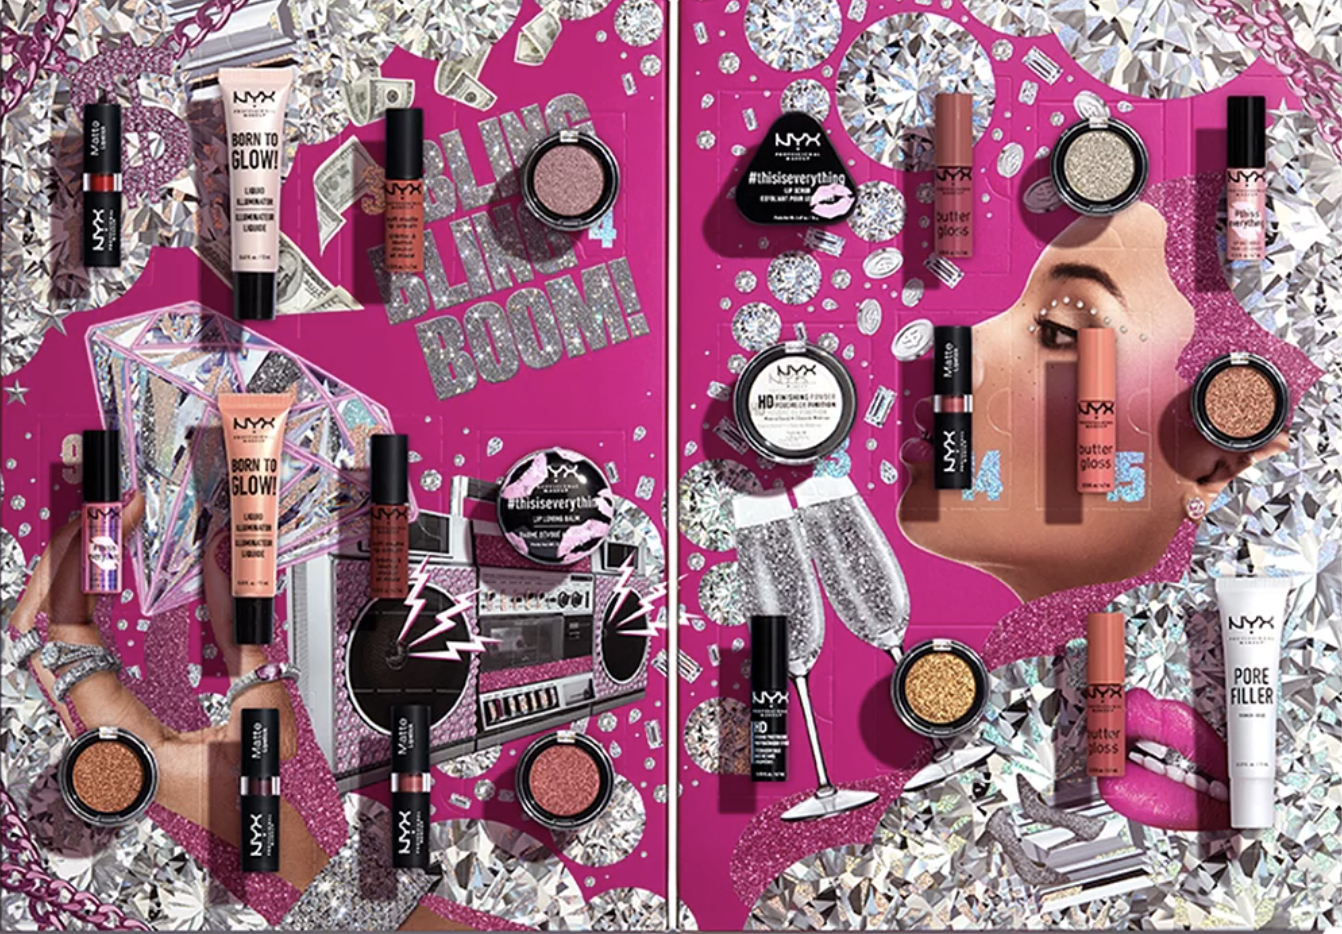 a pink cardboard advent calendar covered in glittery diamond designs and the 24 mini beauty products spread across it